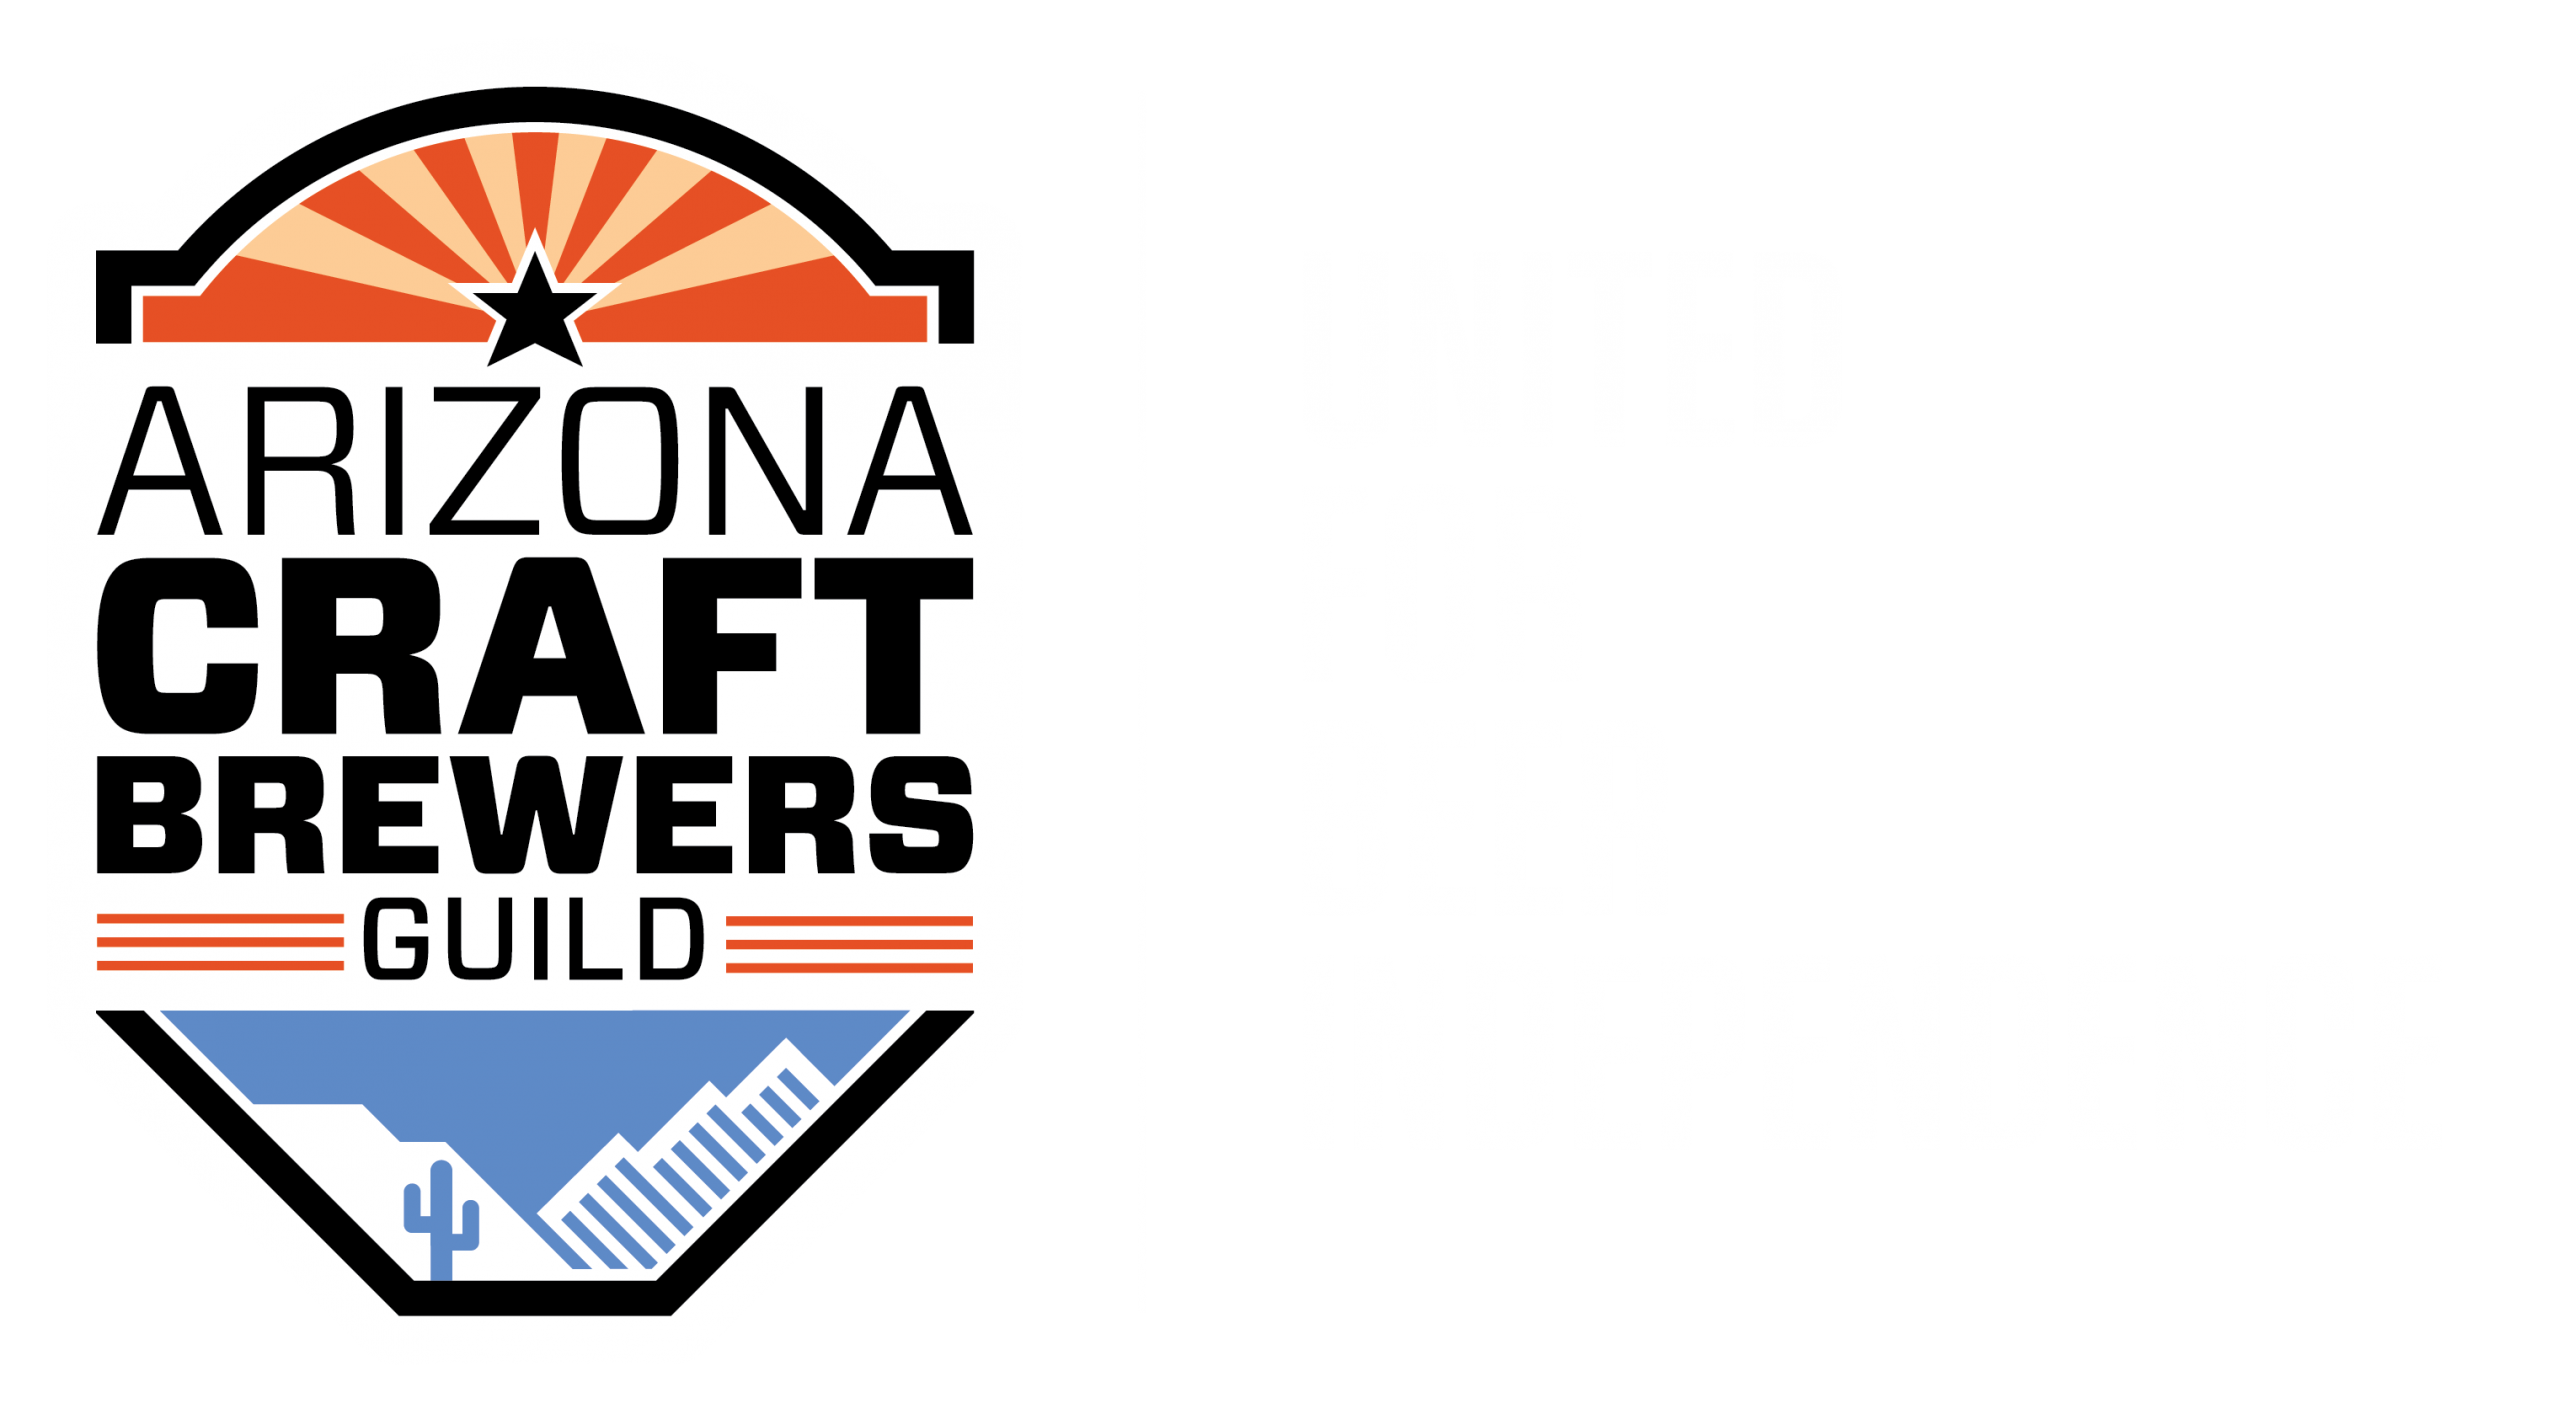 Coaster Culture Printing | Arizona Craft Brewers Guild